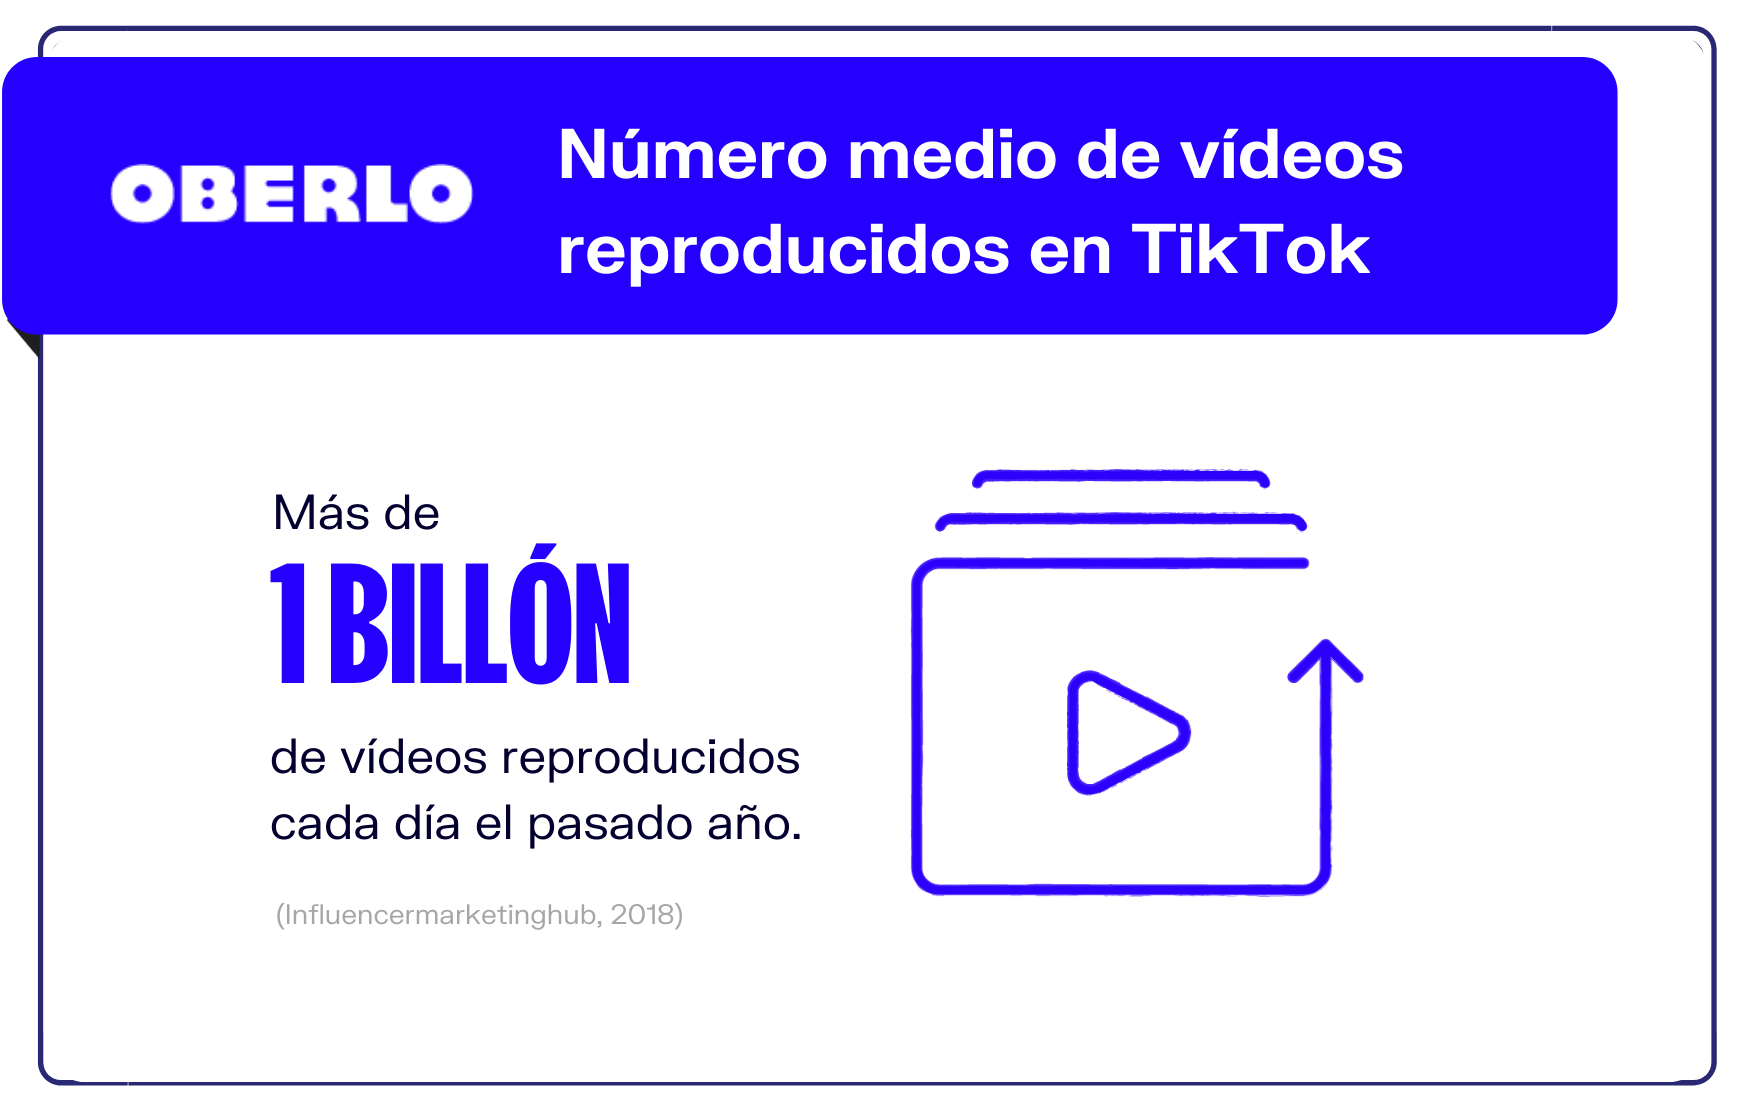 10-Videos-vistos-al-dia-en-TikTok